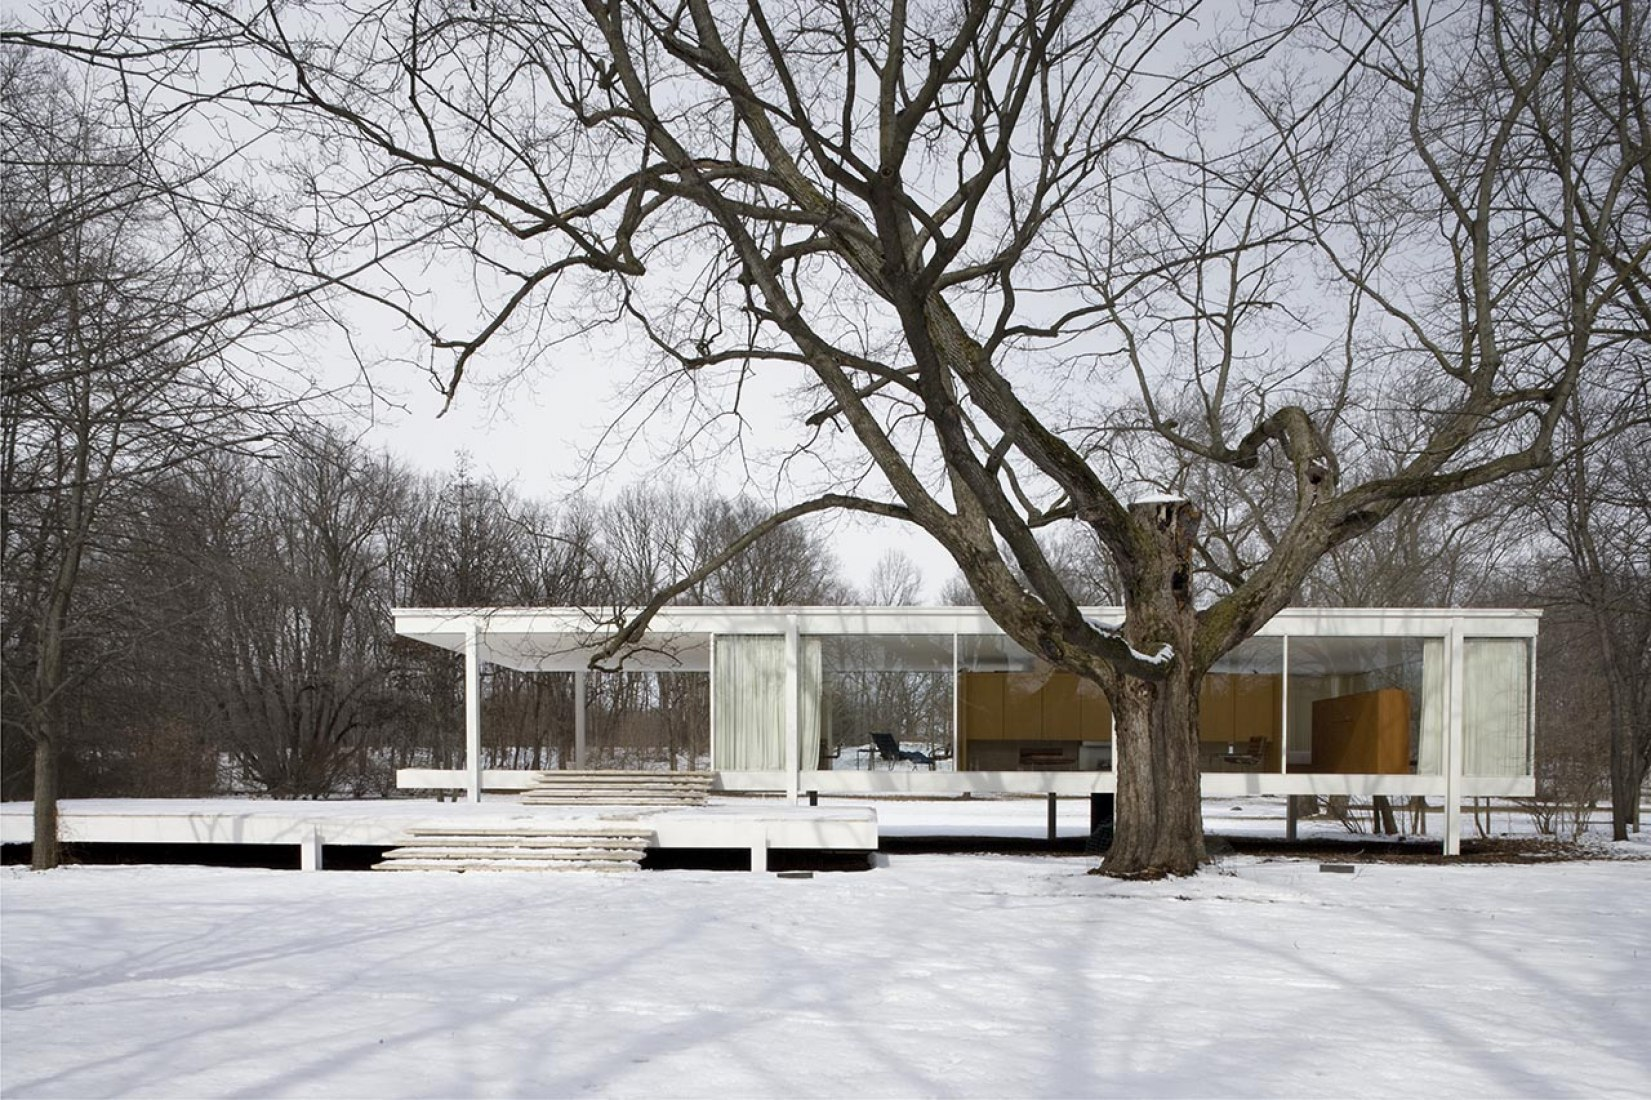 Farnsworth House by Mies van der Rohe, 8 March 2006. Photography © Carol M. Highsmith.